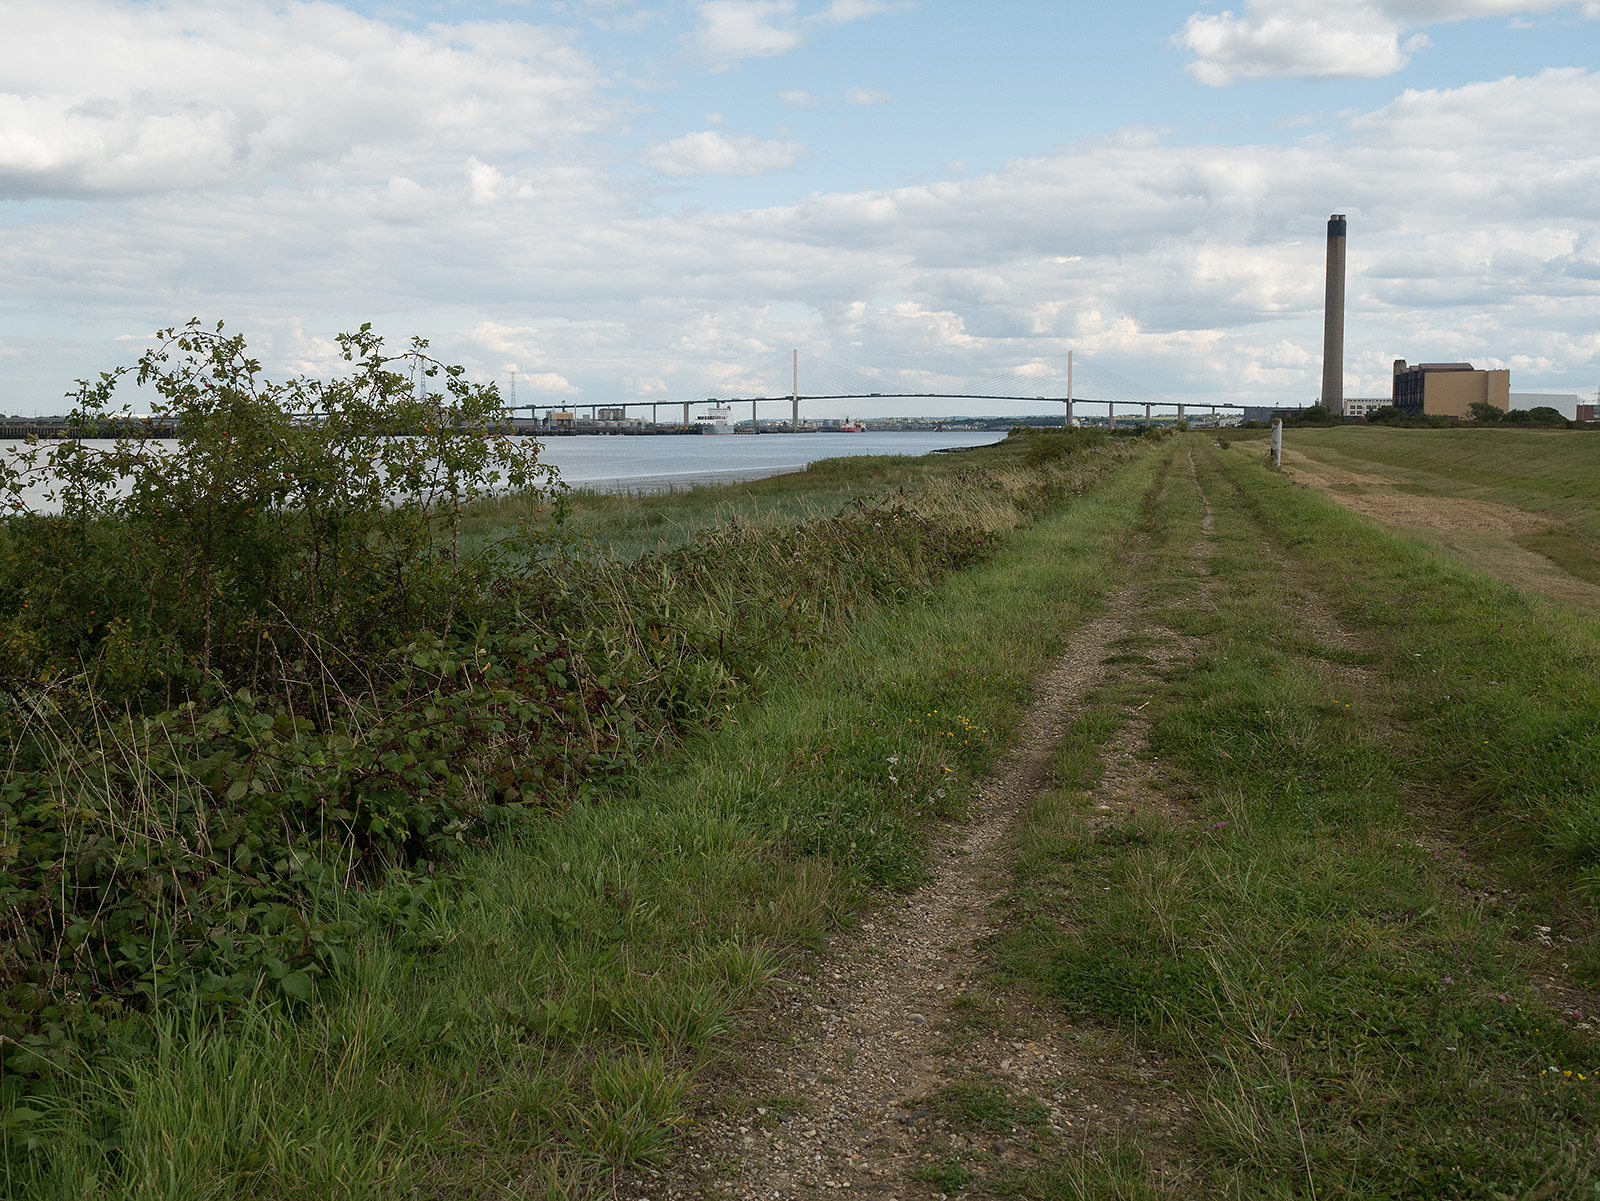 Heading eastwards, the QE2 bridge dominates the view